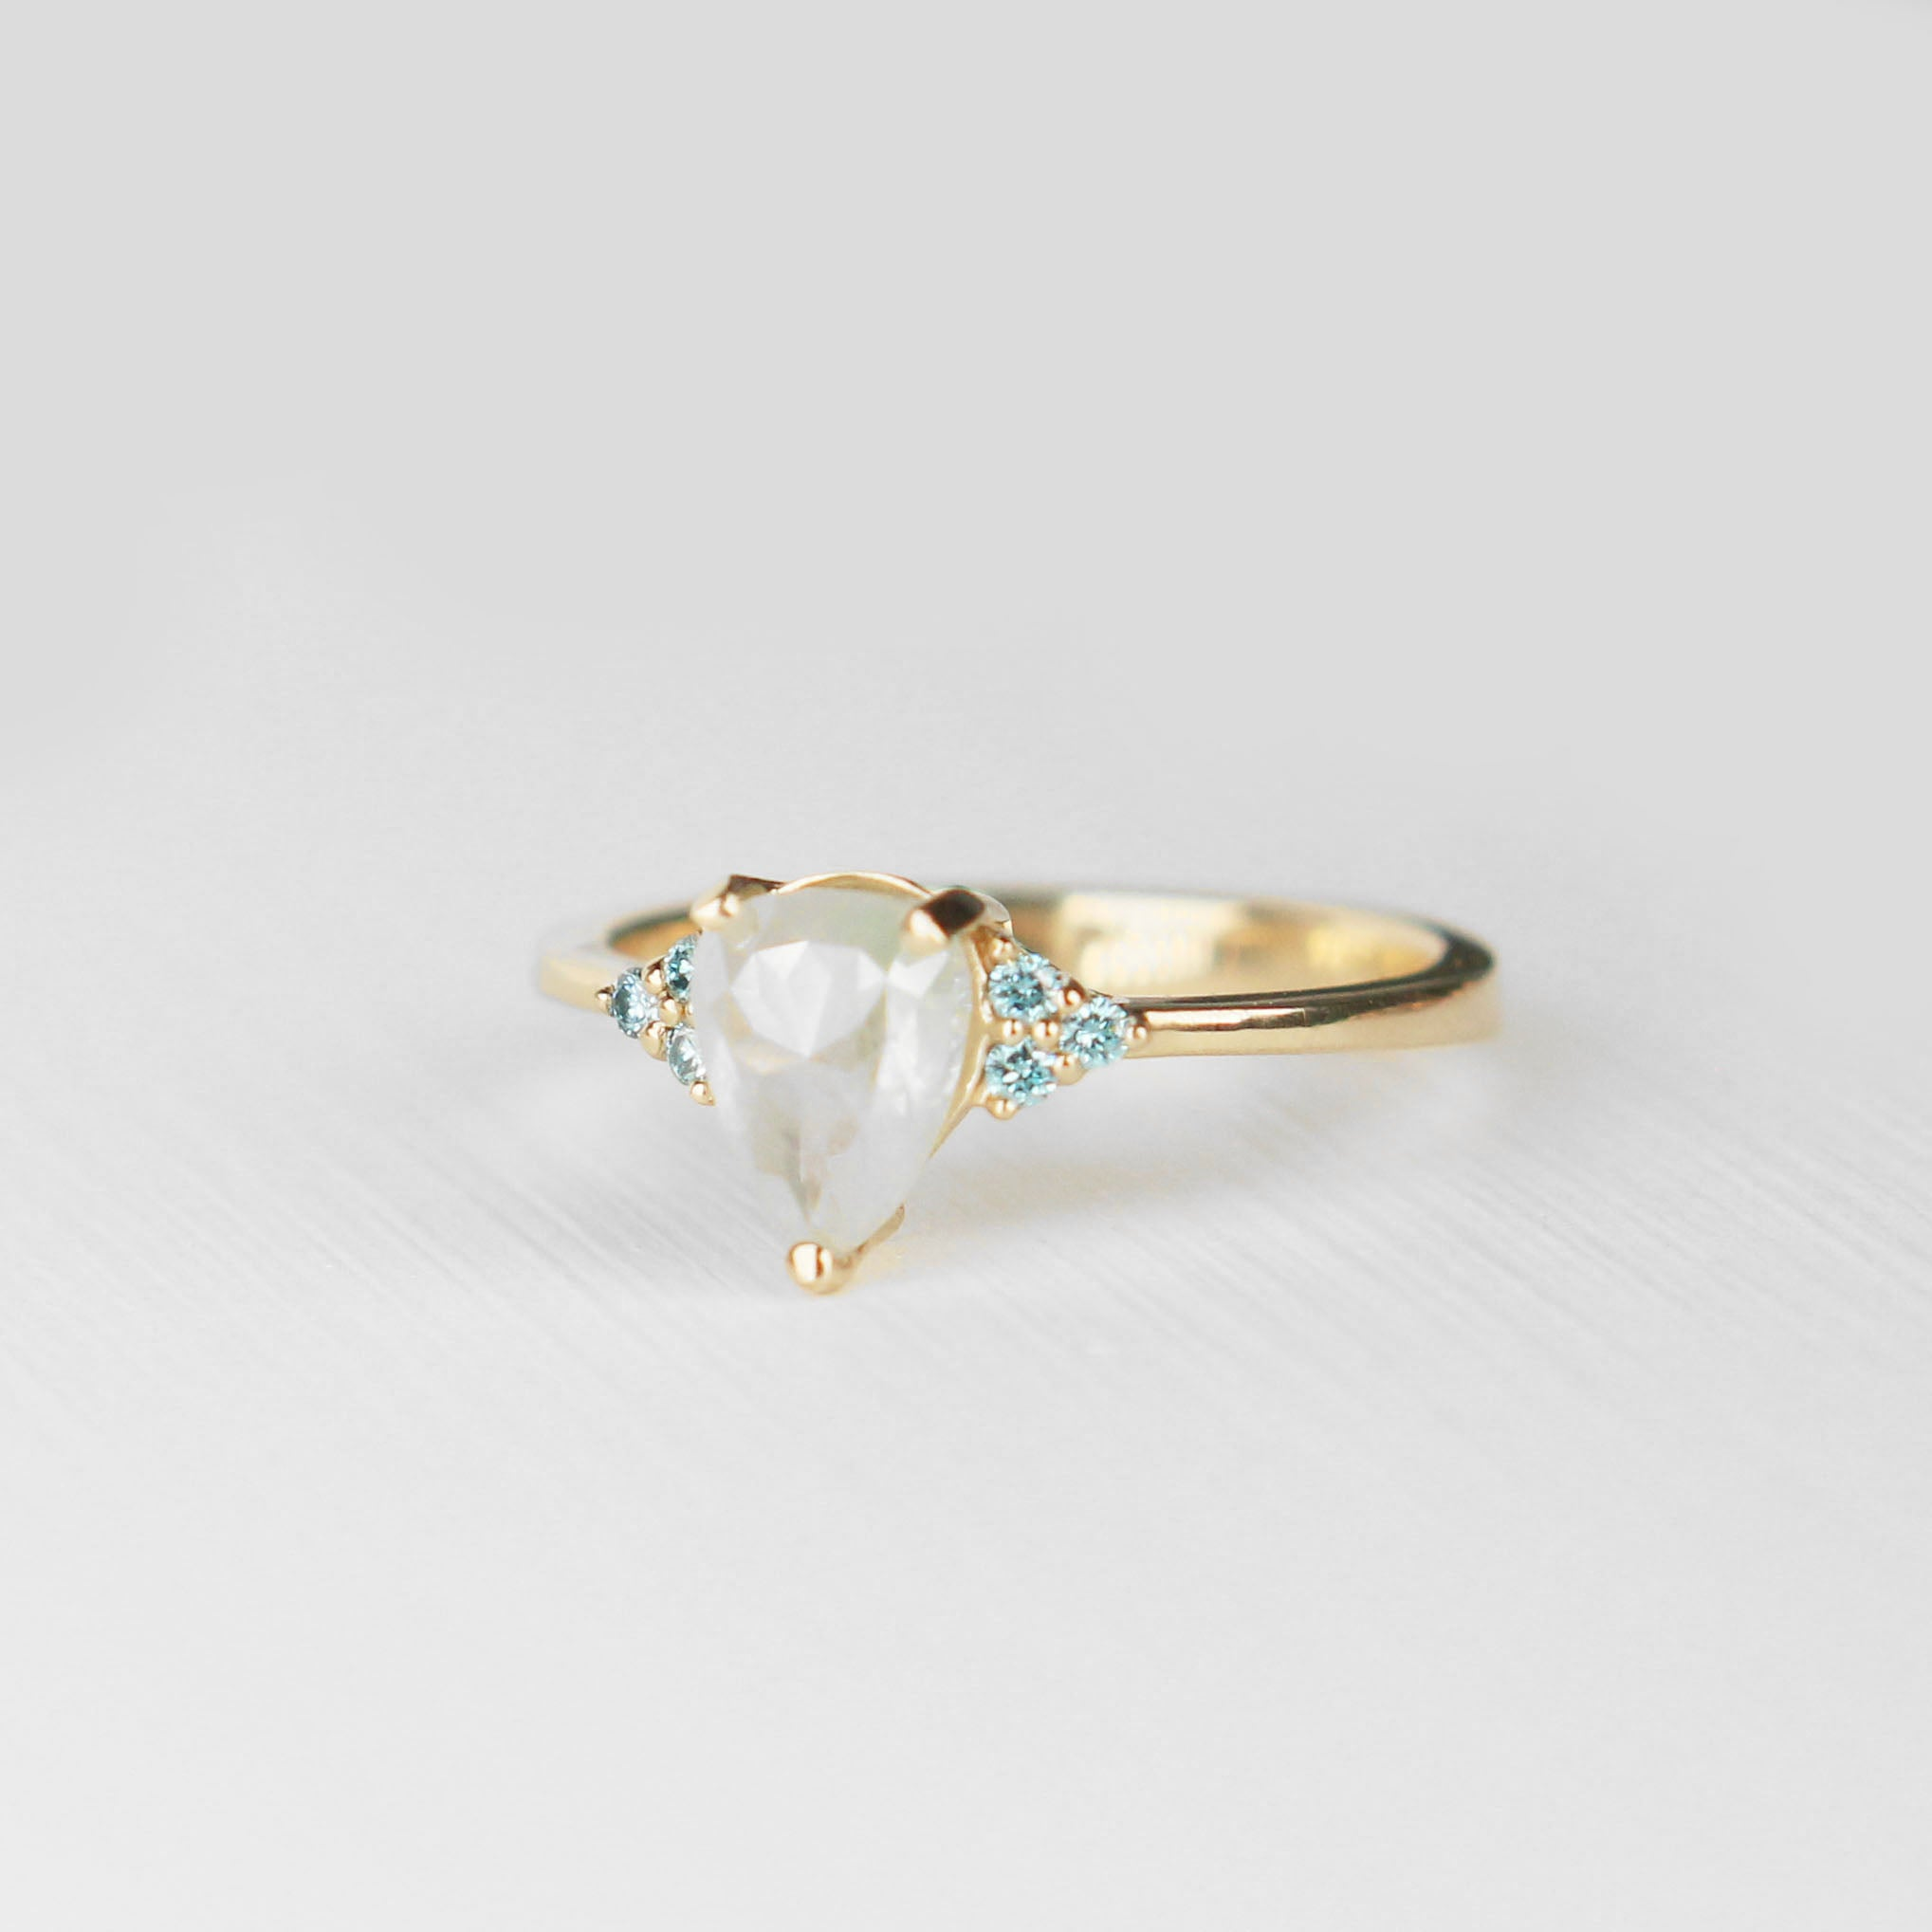 Imogene Ring - Misty aqua natural white blue diamond in 14k yellow gold - Ready to size and ship - Celestial Diamonds ® by Midwinter Co.